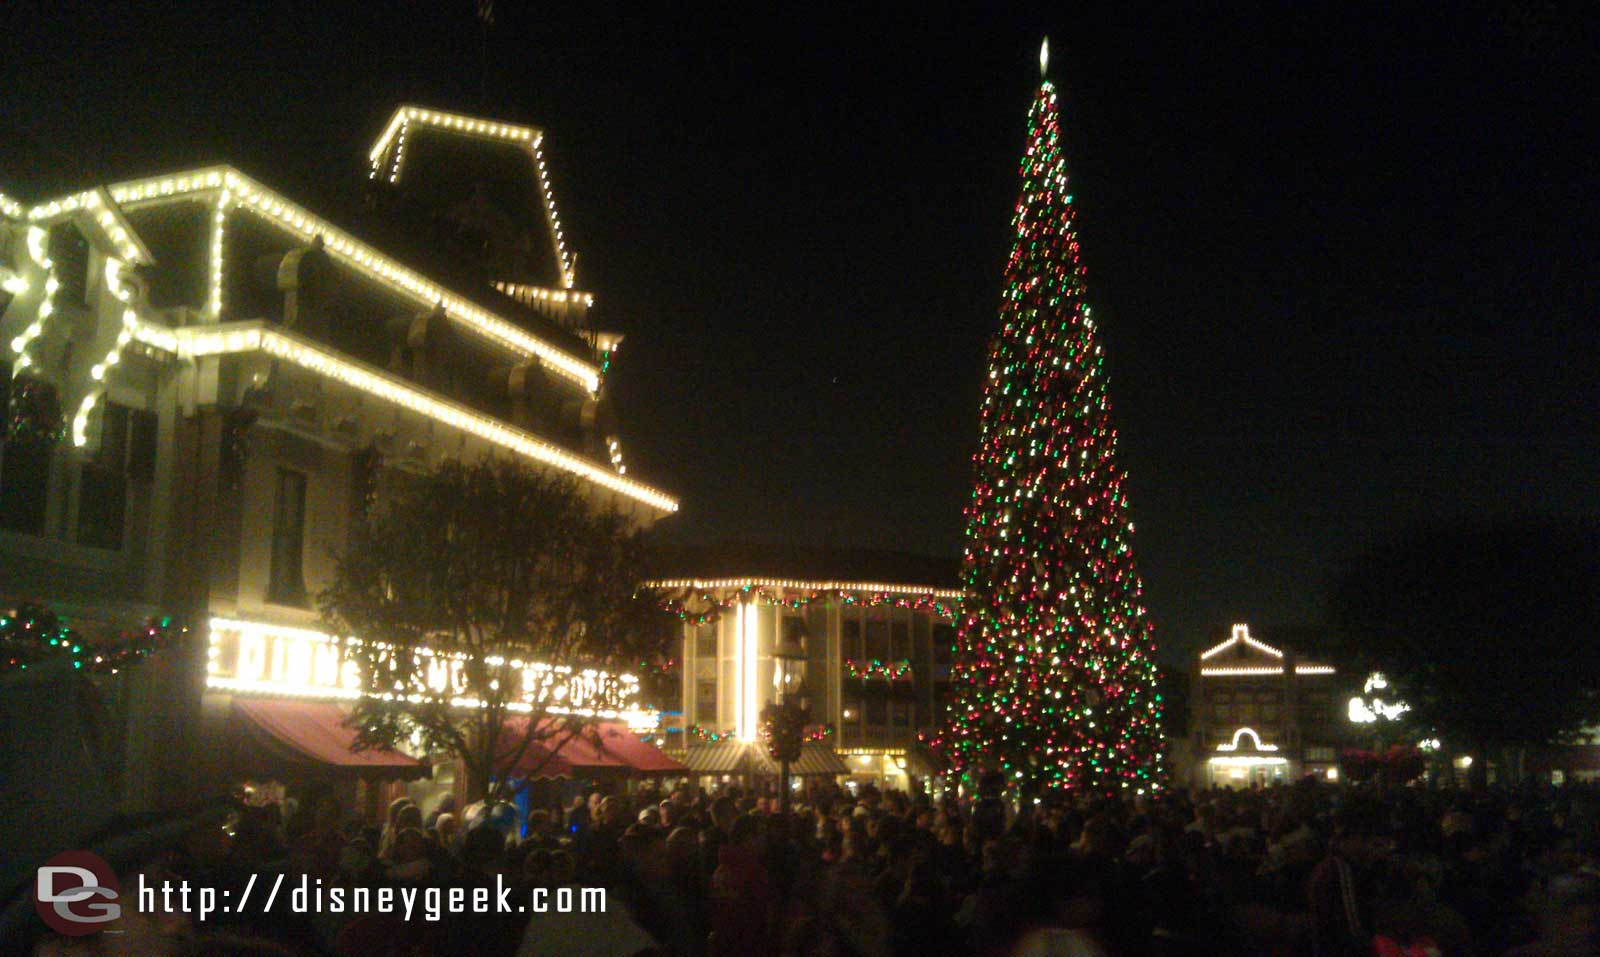 The tree on Main Street as I wait for the Candlelight to begin.